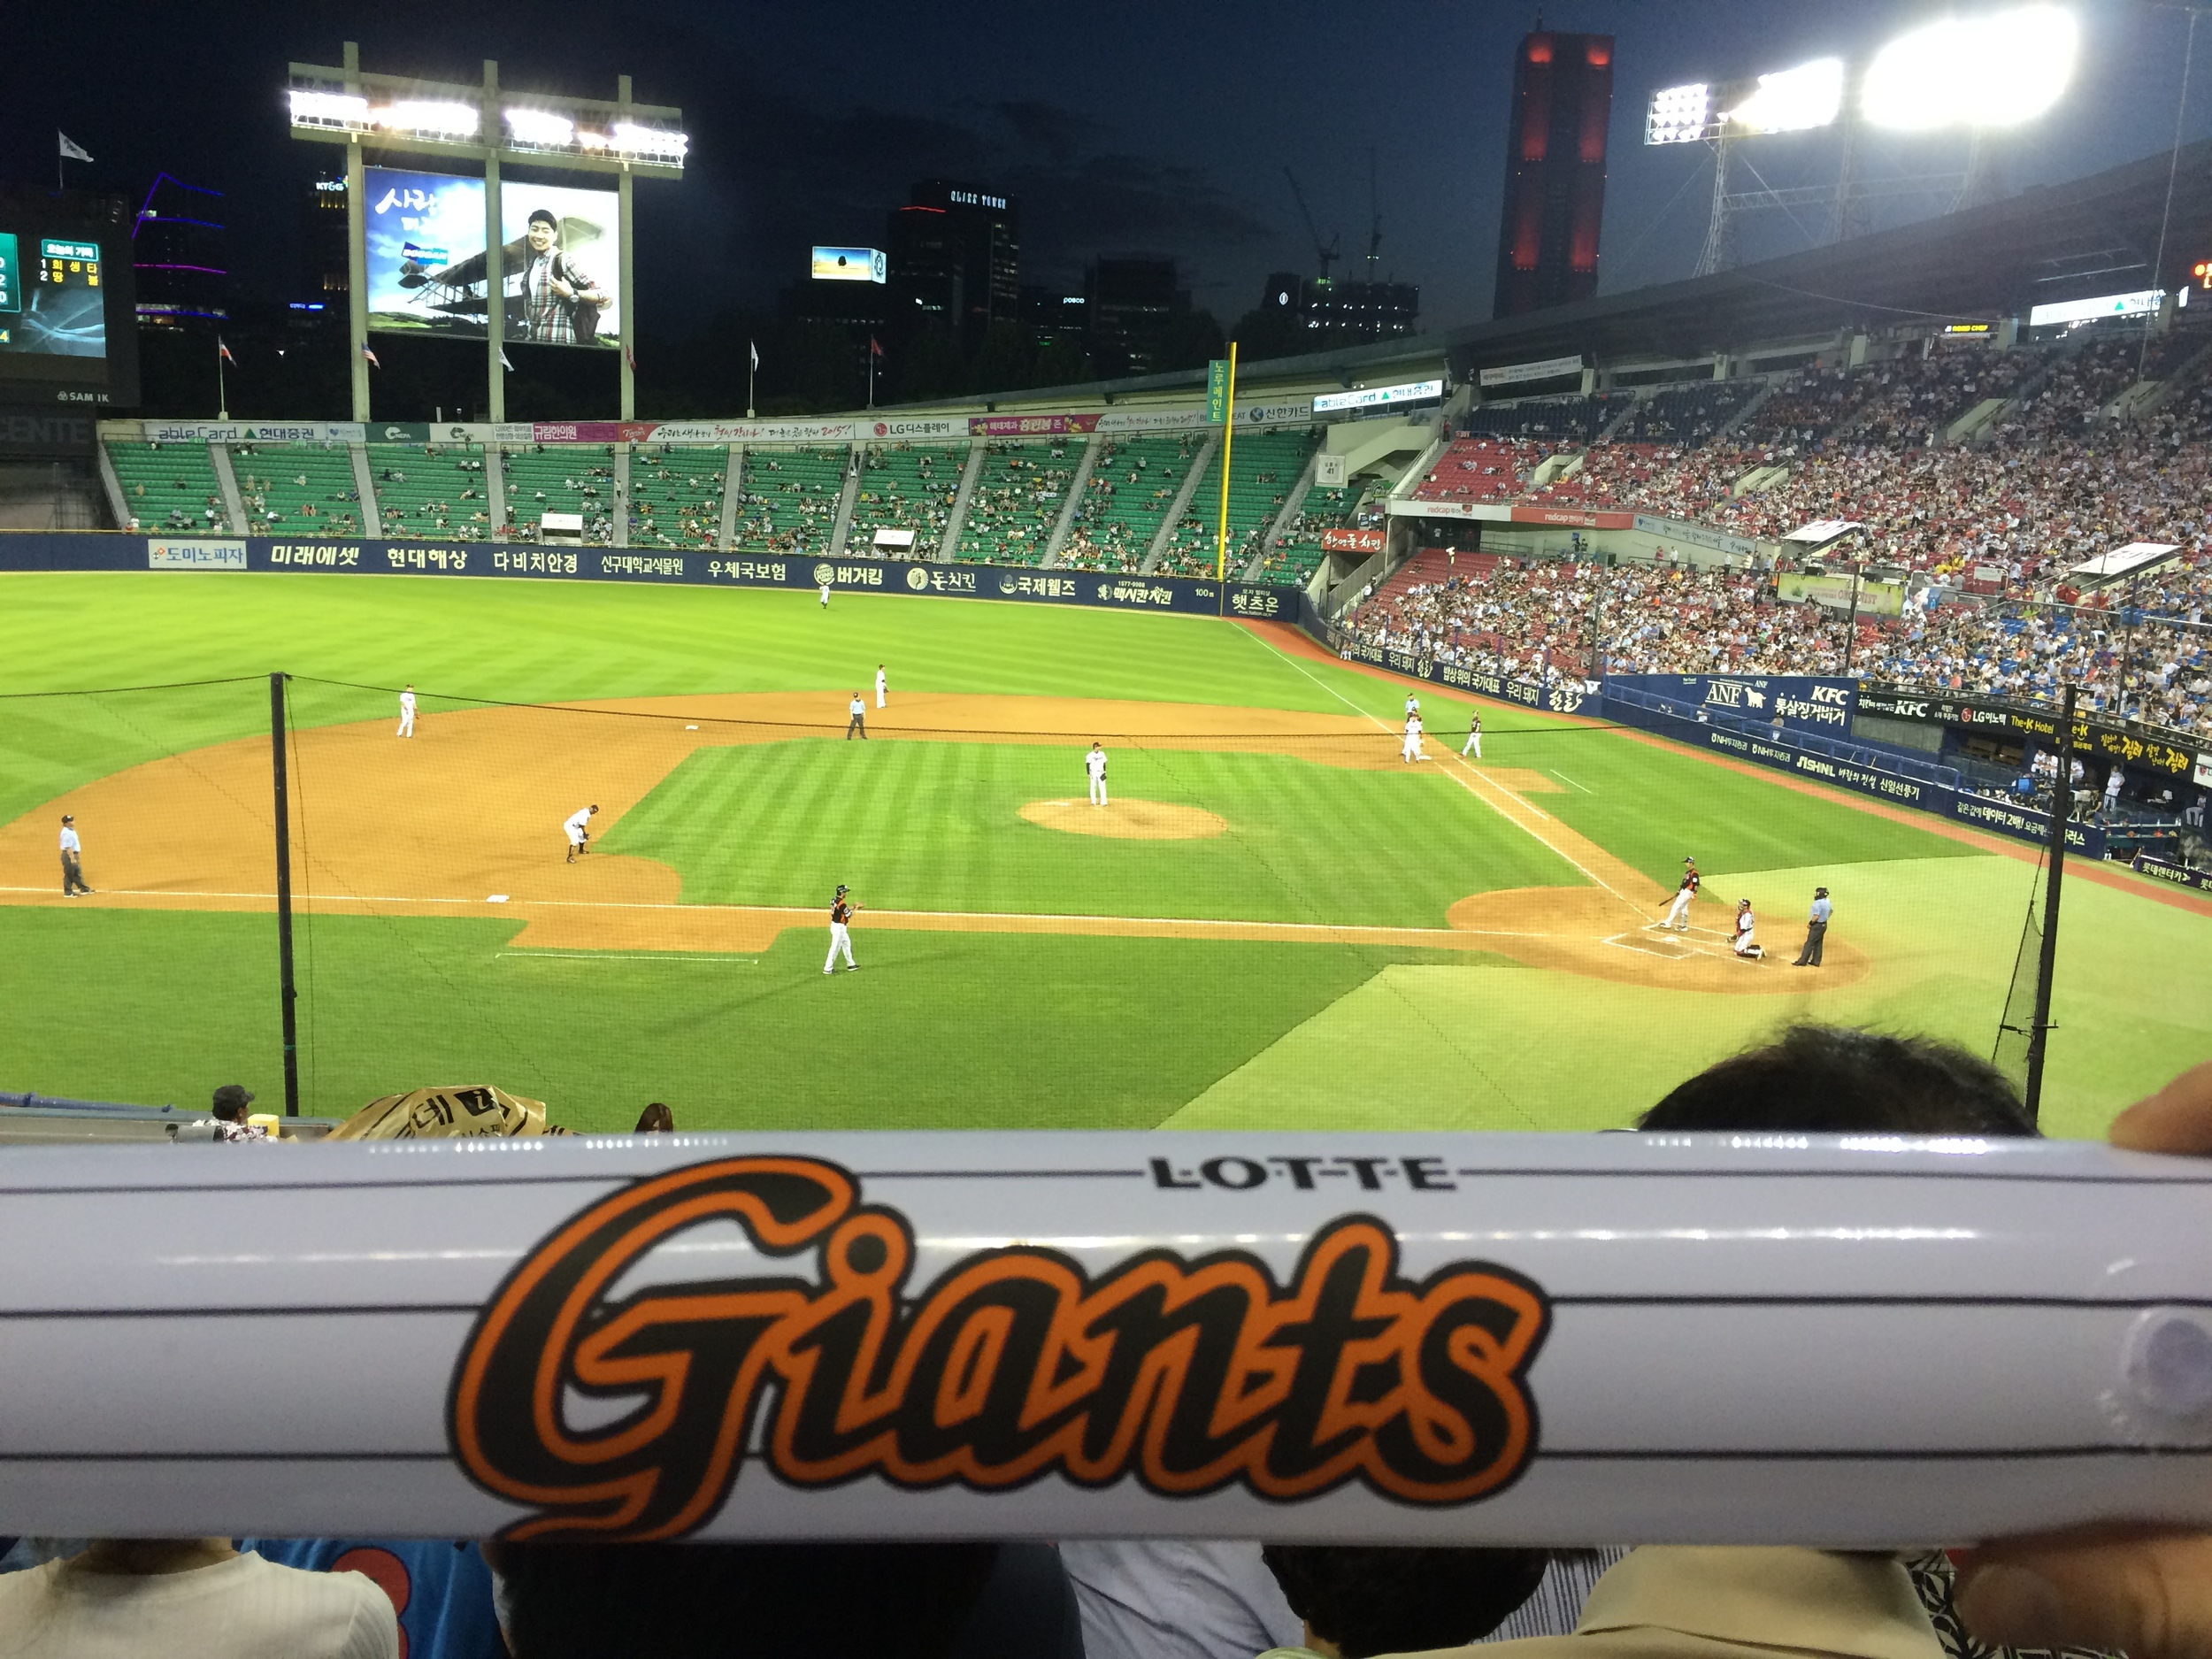 Korean baseball started in the early 1900's, shared and taught from American's. It's so much the same as US baseball (like the names - watched the Twins vs. the Giants)- but the subtleties make it totally different. Hopefully the Fellows will go to another gamein August when we're back in Korea!